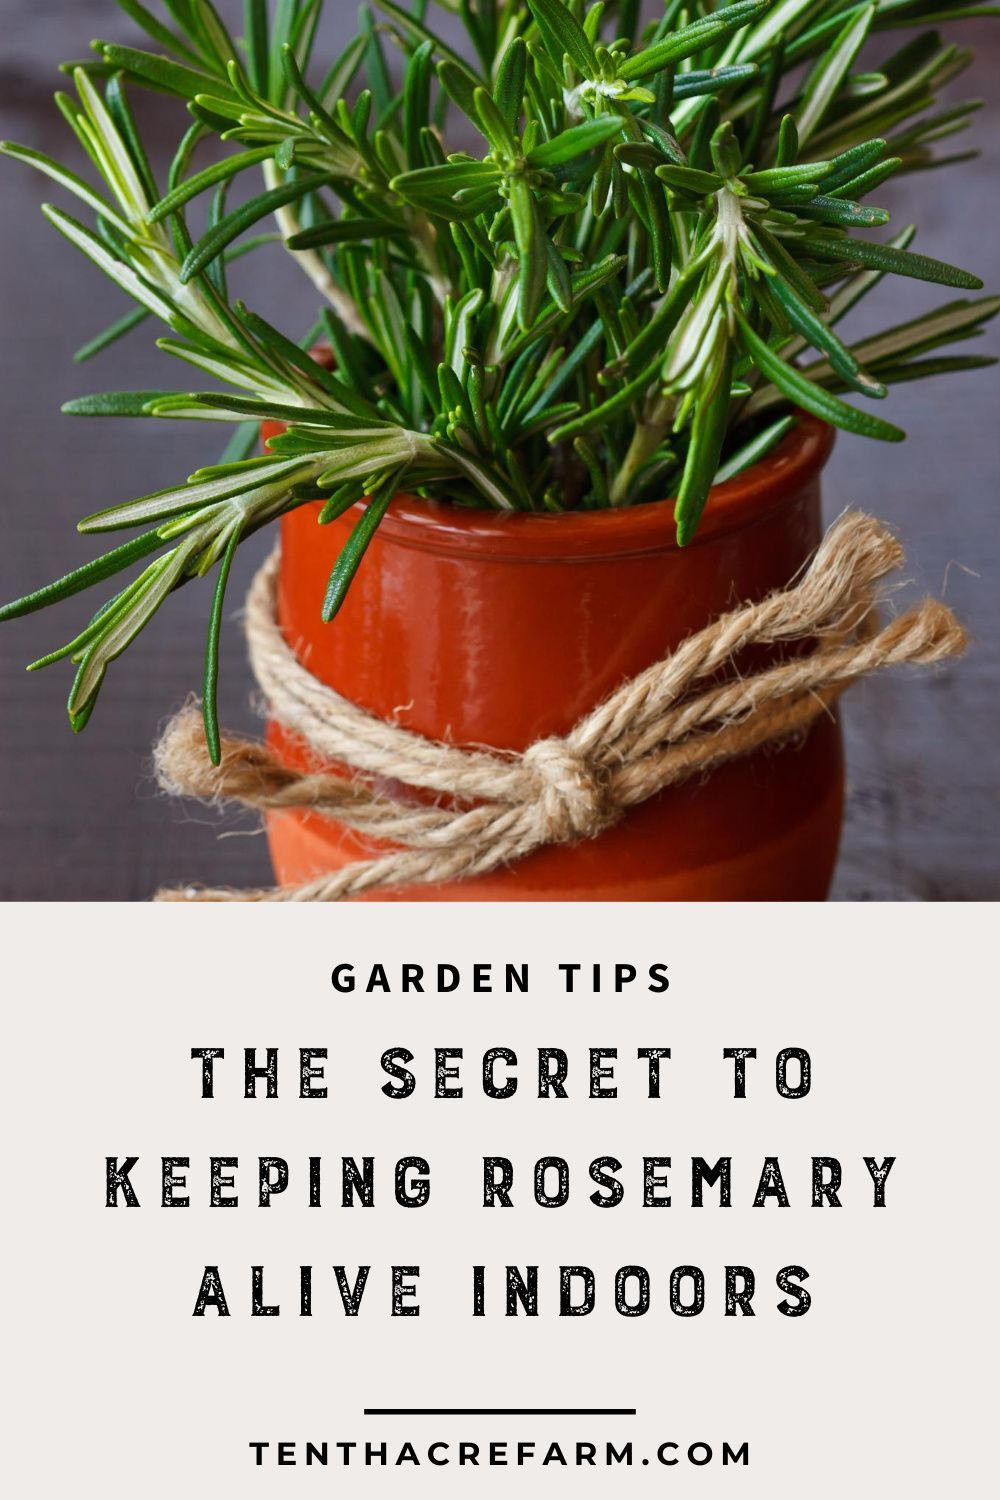 The Secret To Keeping Rosemary Alive Indoors In 2020 Growing Herbs Inside Growing Rosemary Indoors Planting Herbs